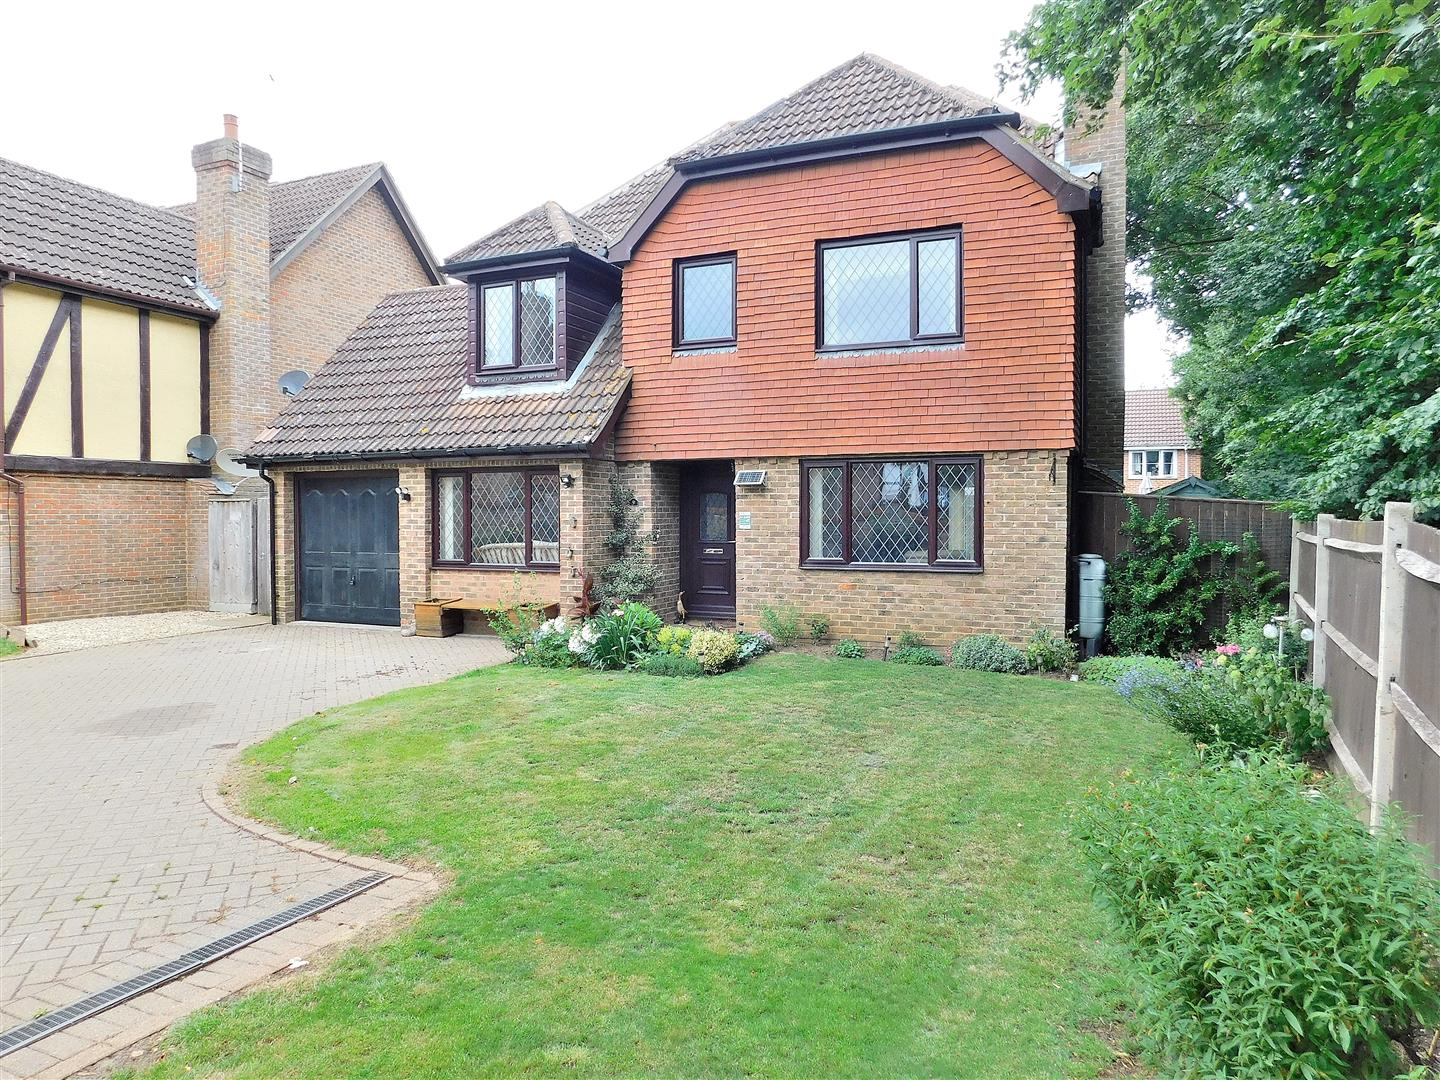 4 bed detached house for sale in King's Lynn, PE33 0EG  - Property Image 1